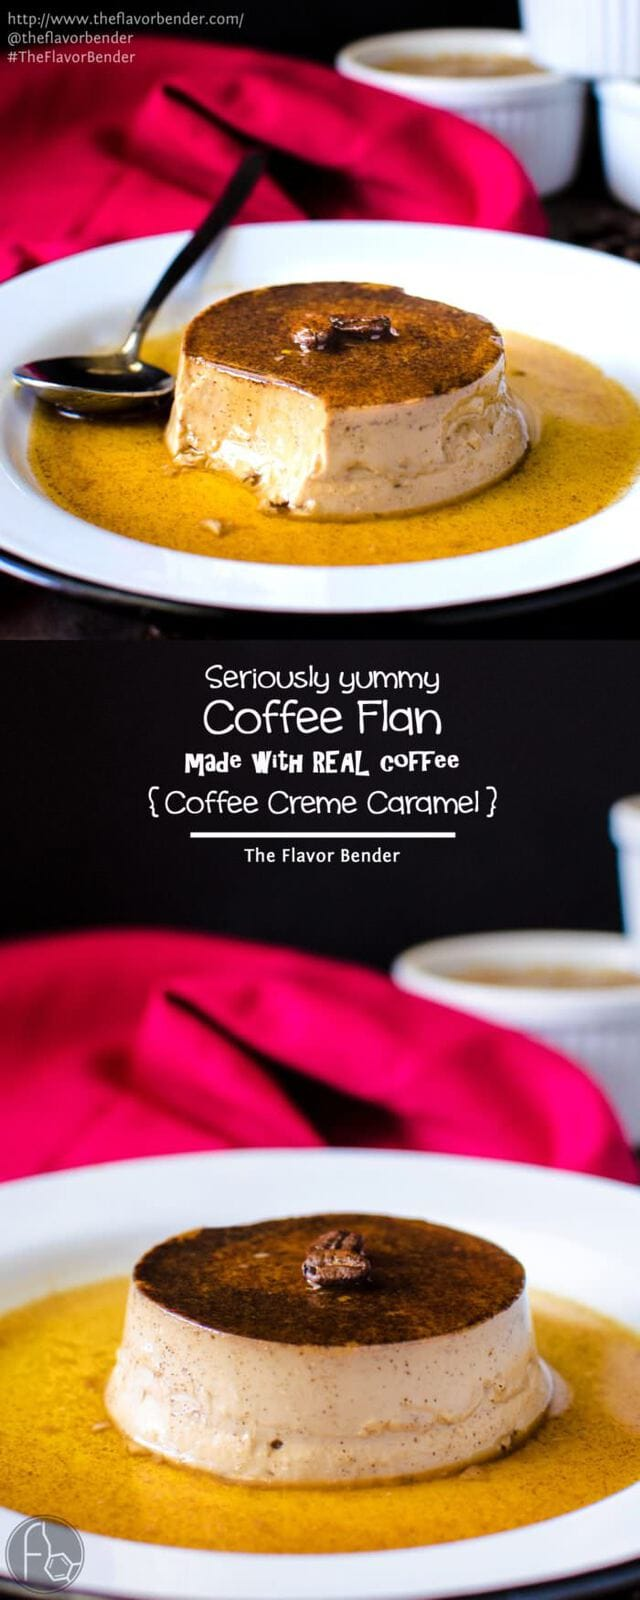 Coffee Flan - Classic Creme Caramel with a wonderful coffee twist! This Coffee creme caramel is made with coffee infused cream! Since it's so easy to make, delicate, super creamy and irrestibly addictive, it is the most requested dessert in our home. REPIN to save. CLICK to get the recipe. #TheFlavorBender